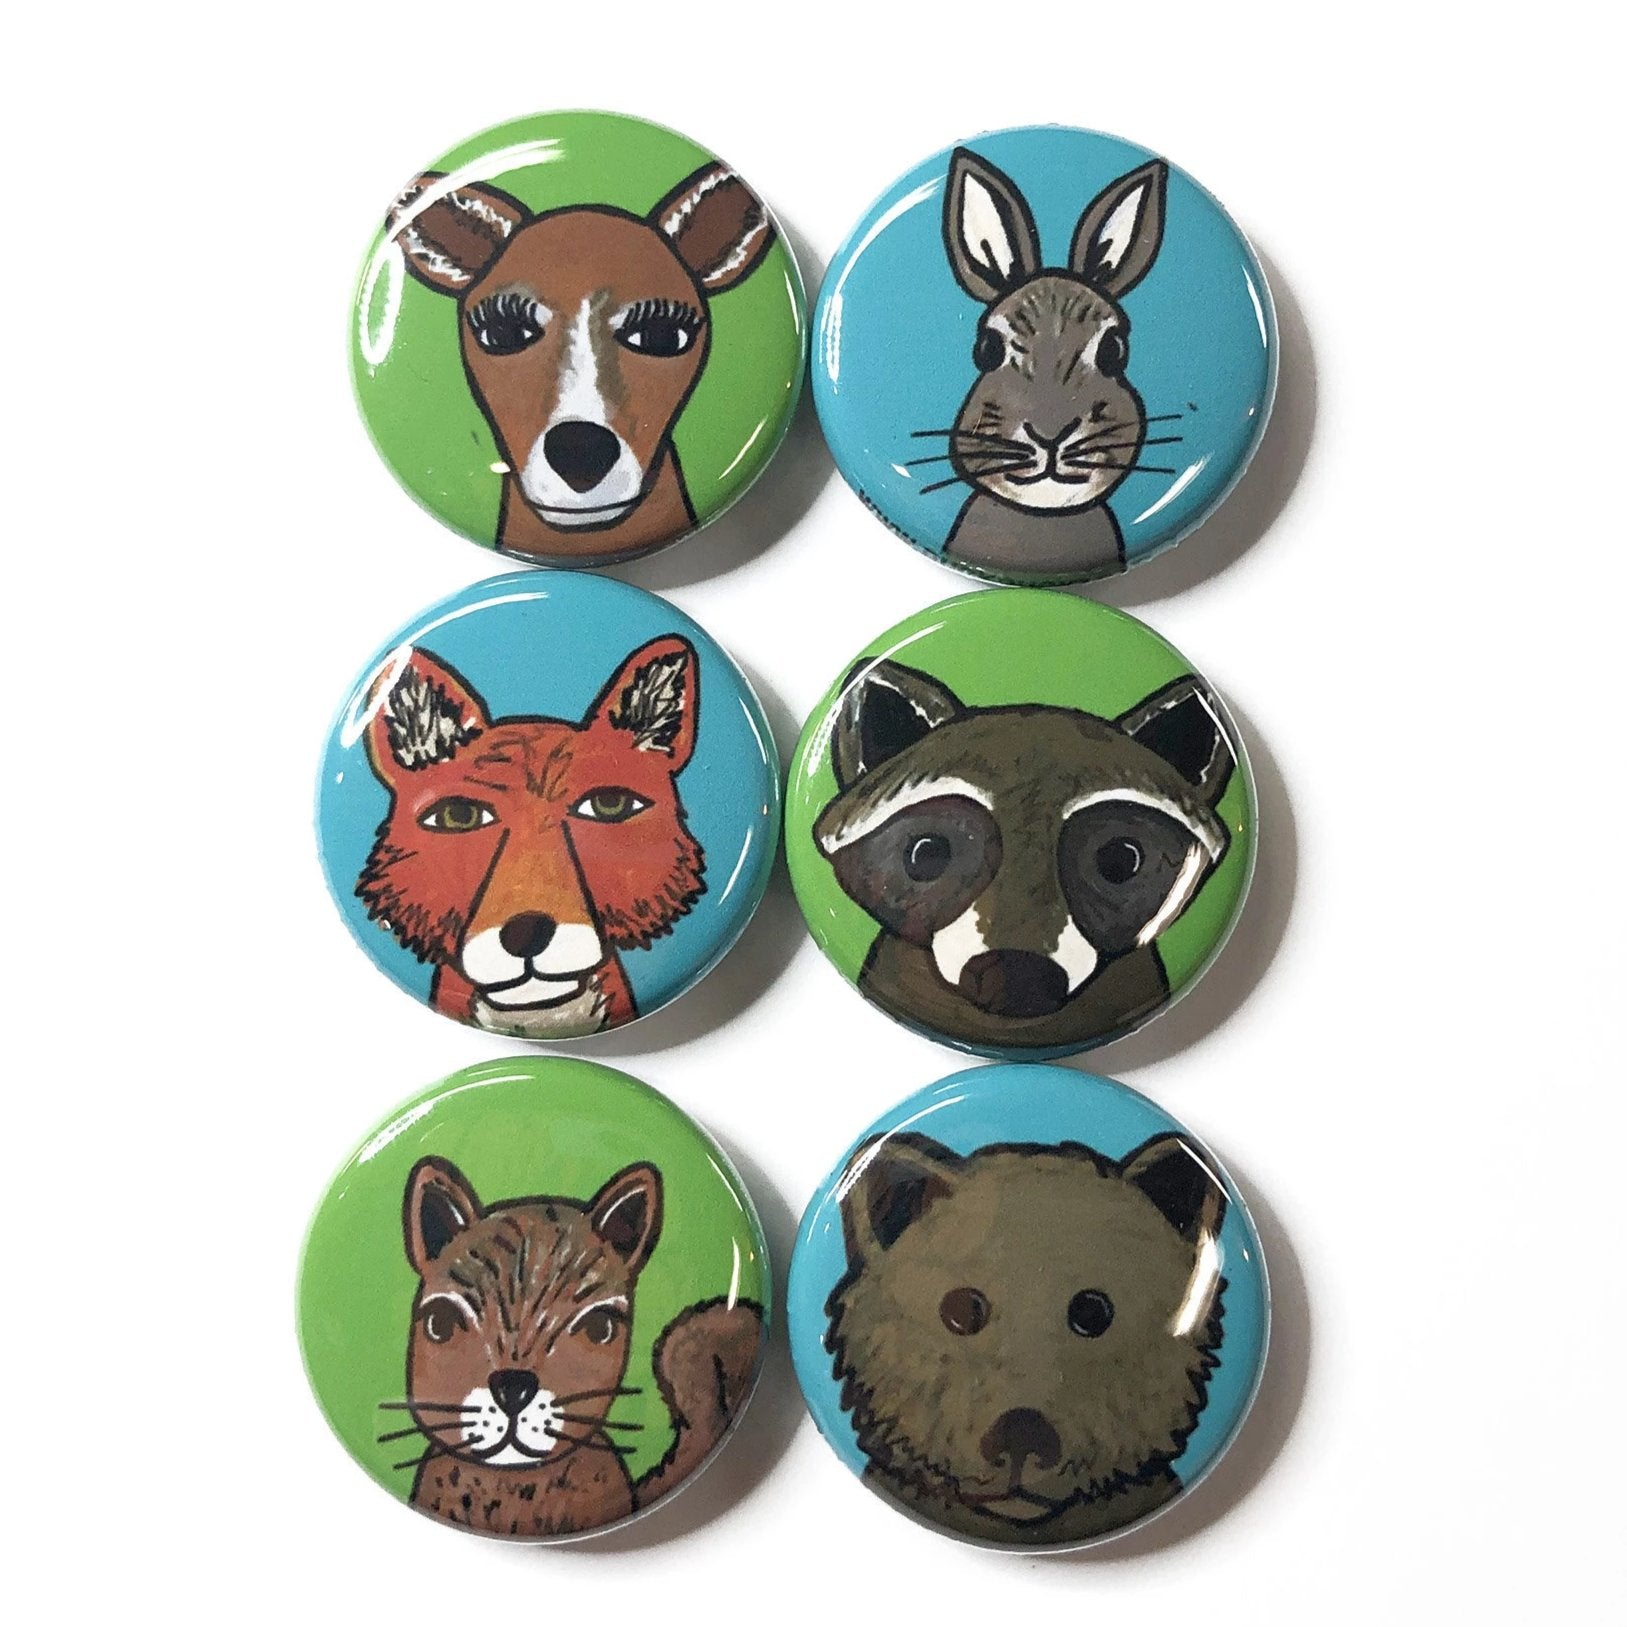 Woodland Animal Magnets or Pinback Buttons - Deer, Rabbit, Fox, Raccoon, Squirrel, Bear